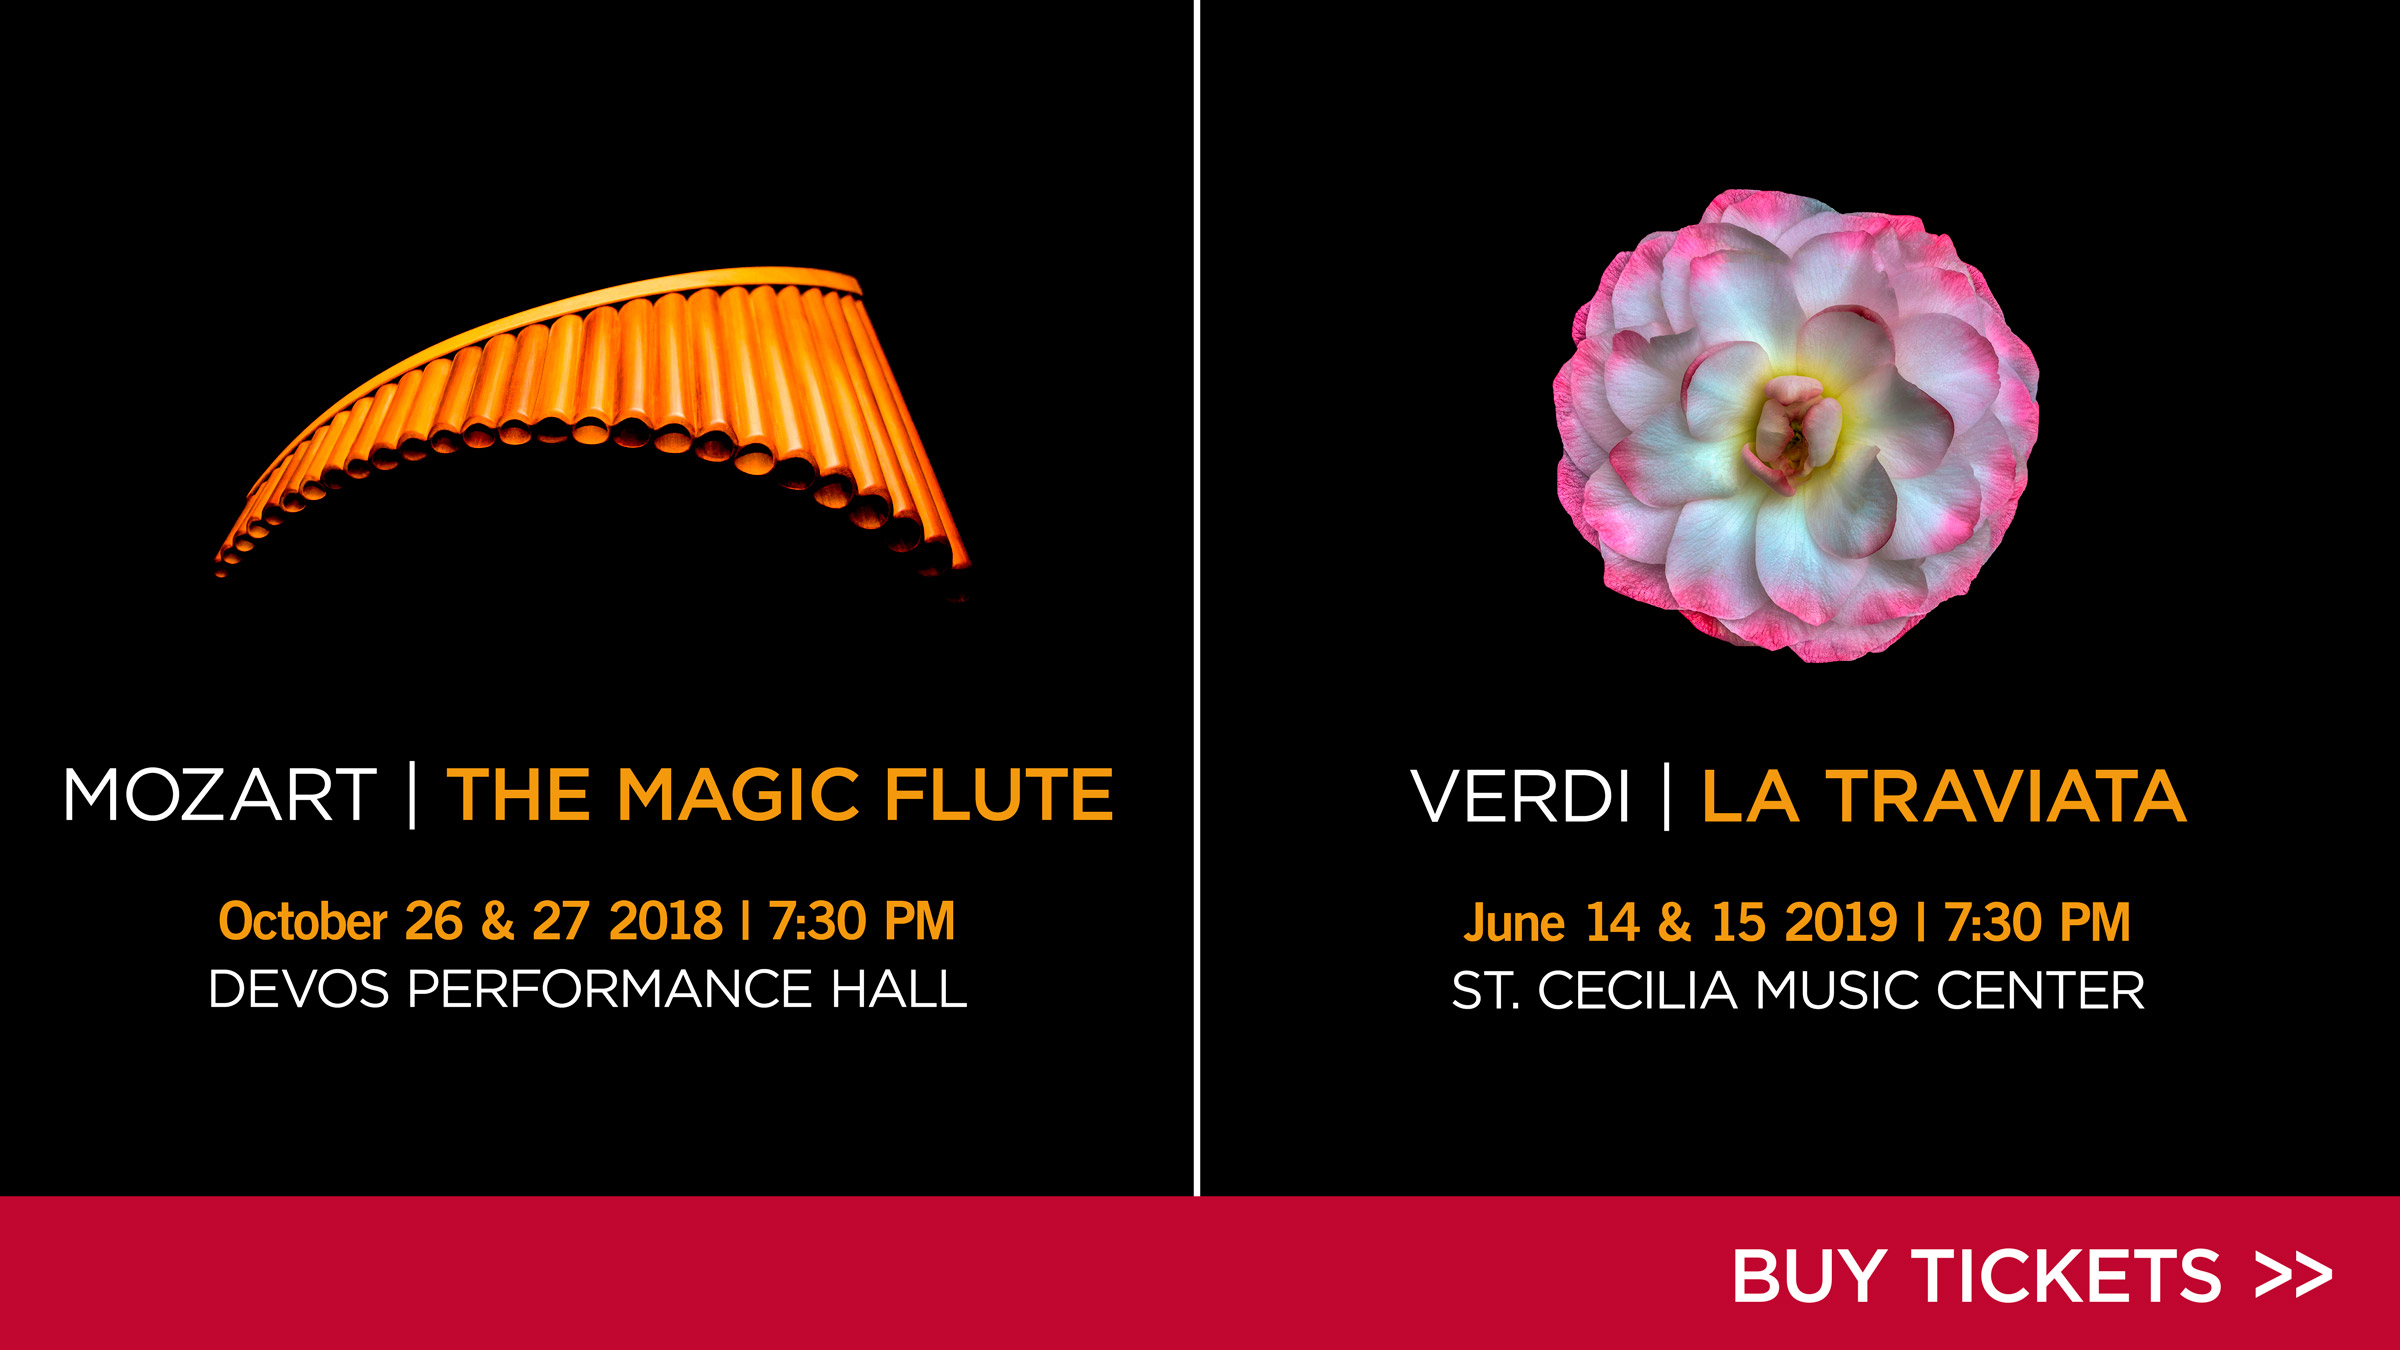 Buy tickets and find performance dates for Motzart's the Magic Flute and Verdi's La Traviata